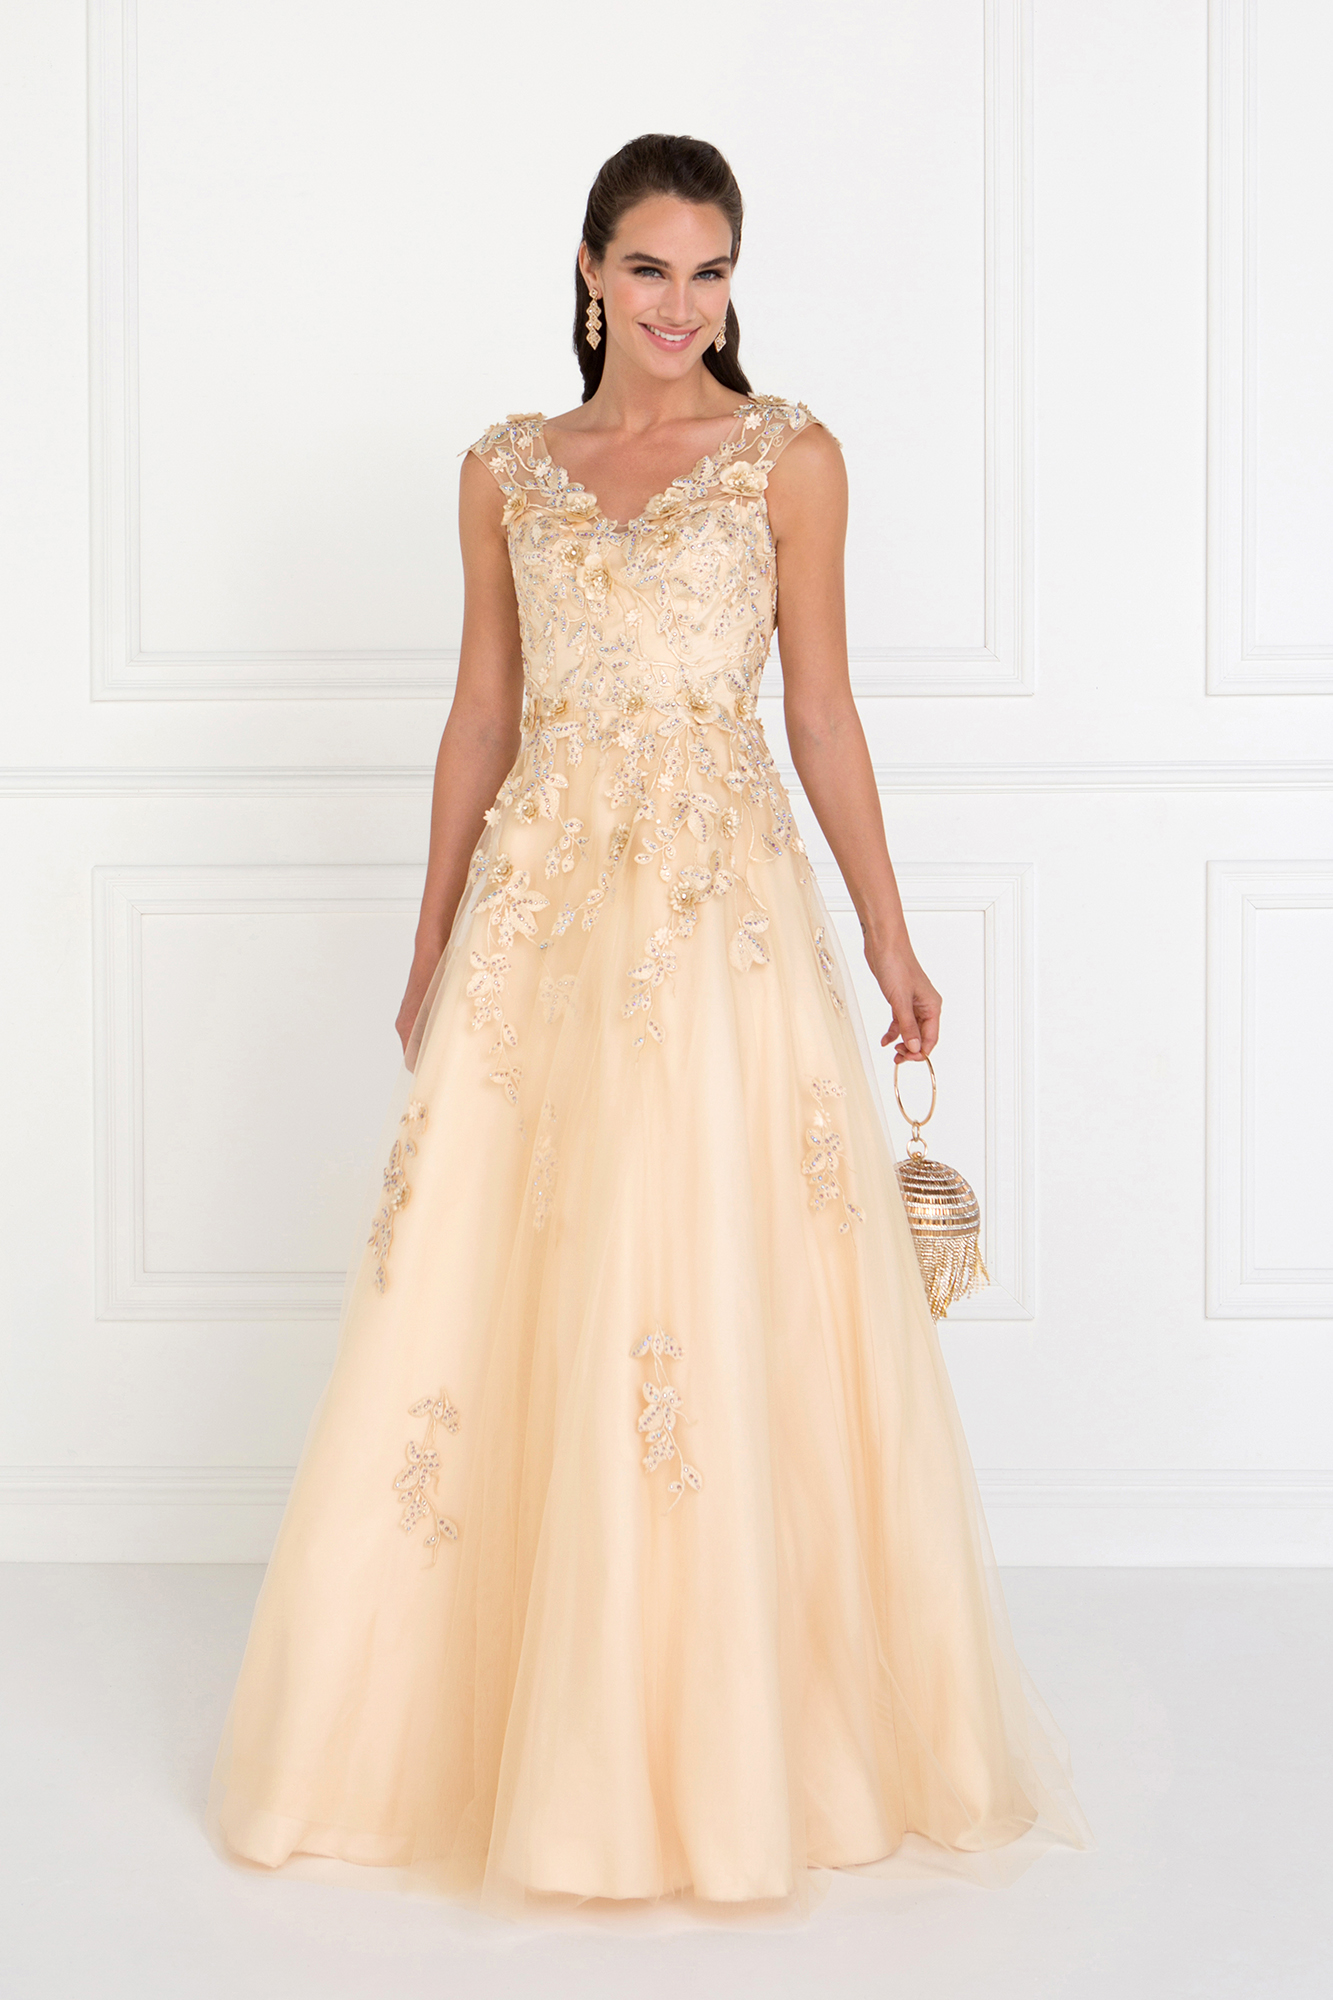 Mother of the Bride Dresses in Sarasota at Barbies Boutique